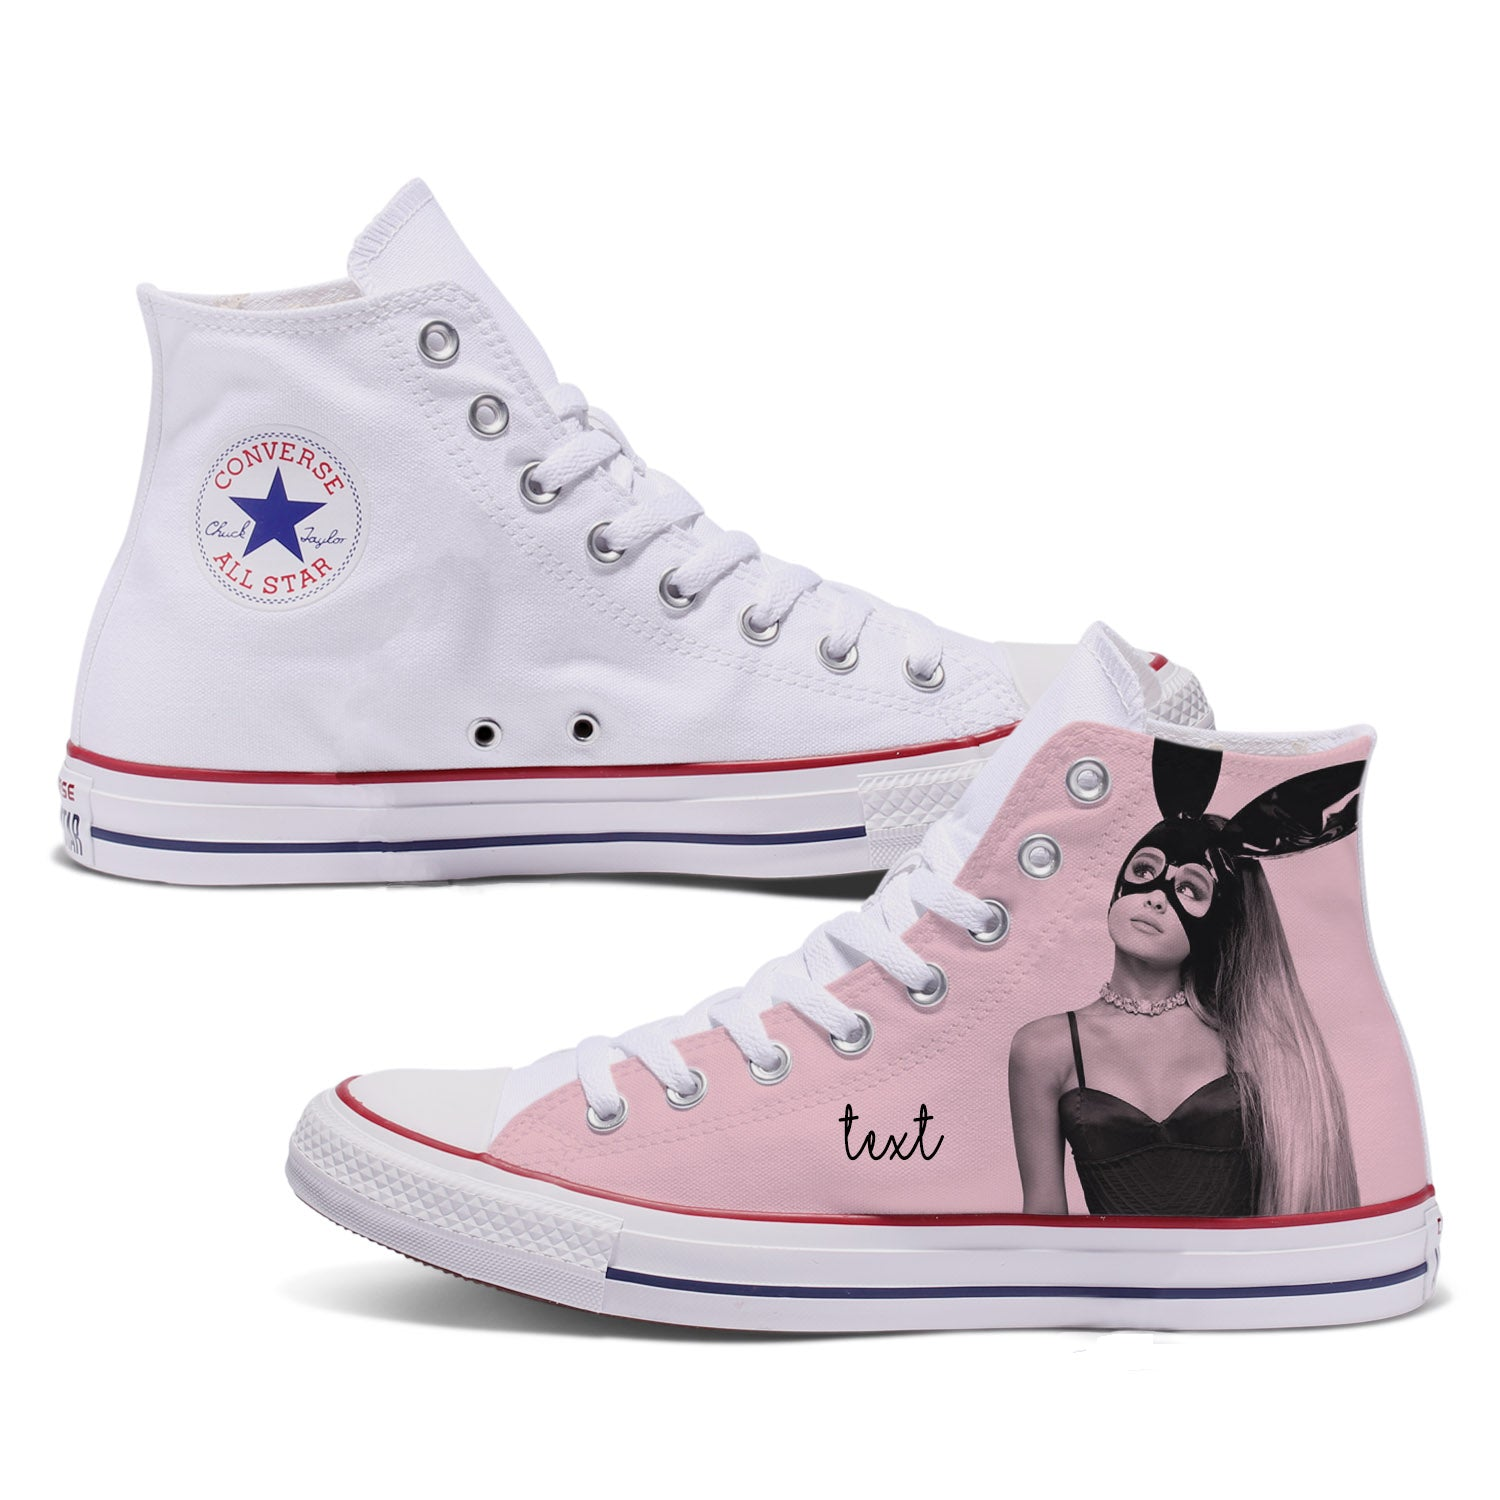 Ariana Dangerous Woman Custom Converse